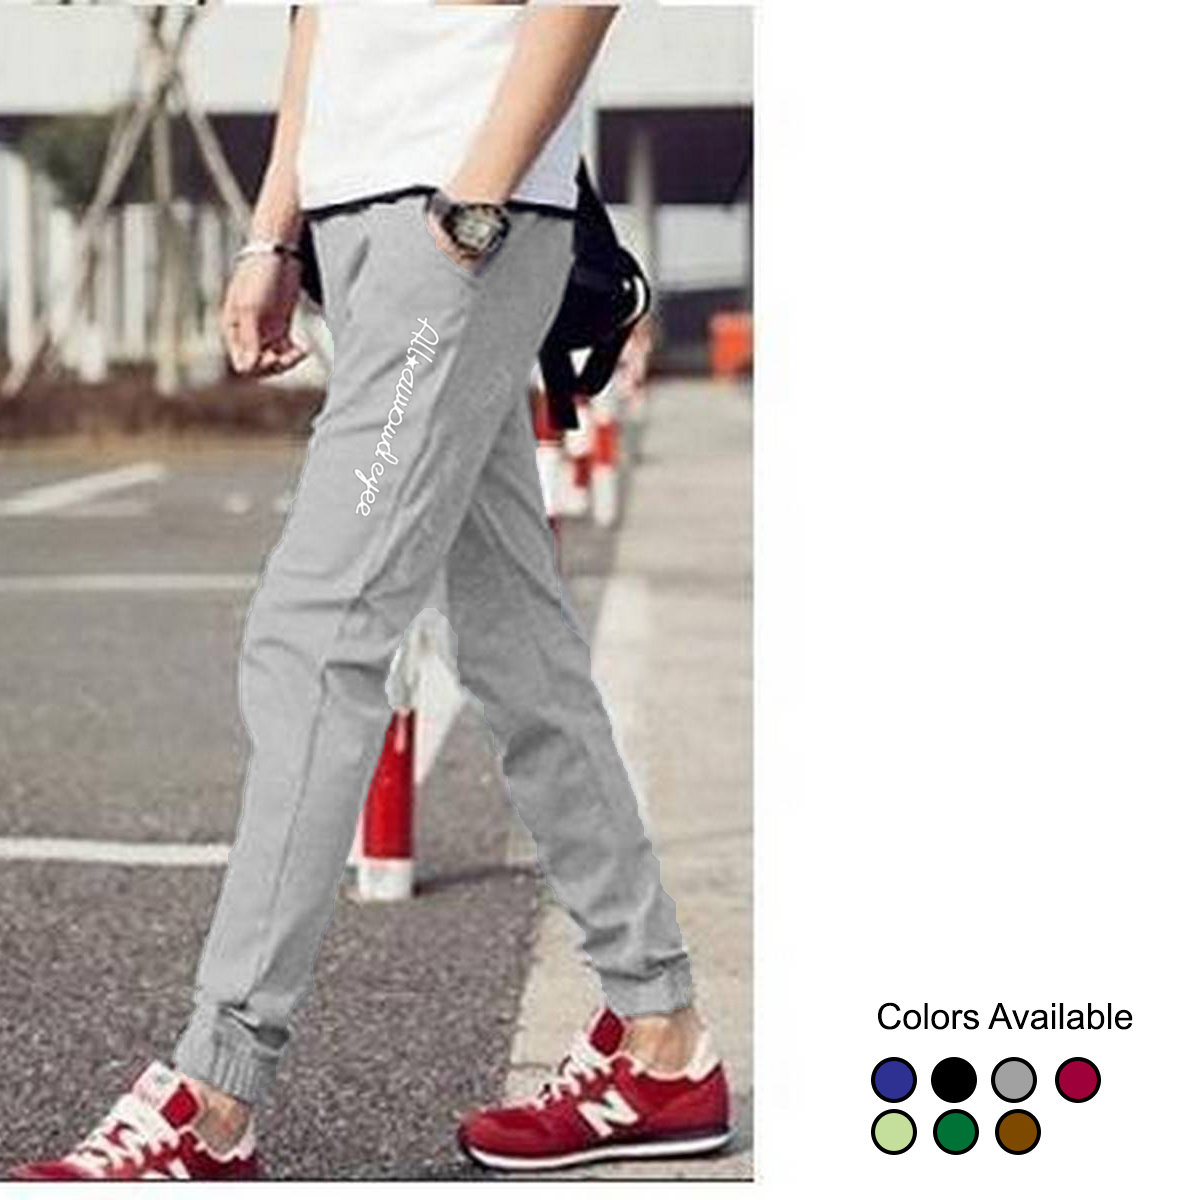 All Eyes Cotton Gym Sports Trousers and Jogging Sweatpant Trouser For Men and Boys